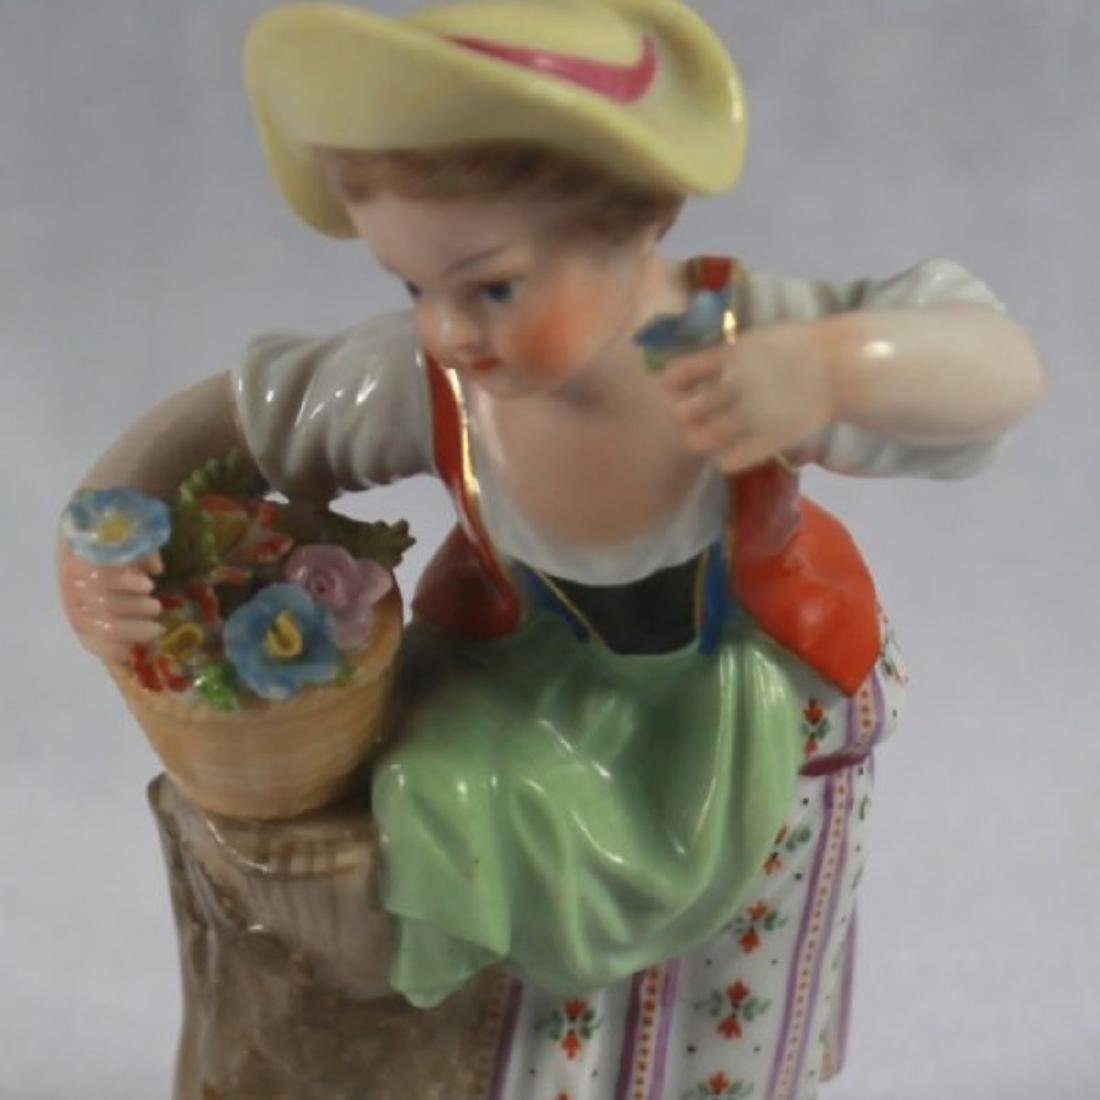 ANTIQUE 19TH C. MEISSEN PORCELAIN FIGURE OF A GIRL - 8